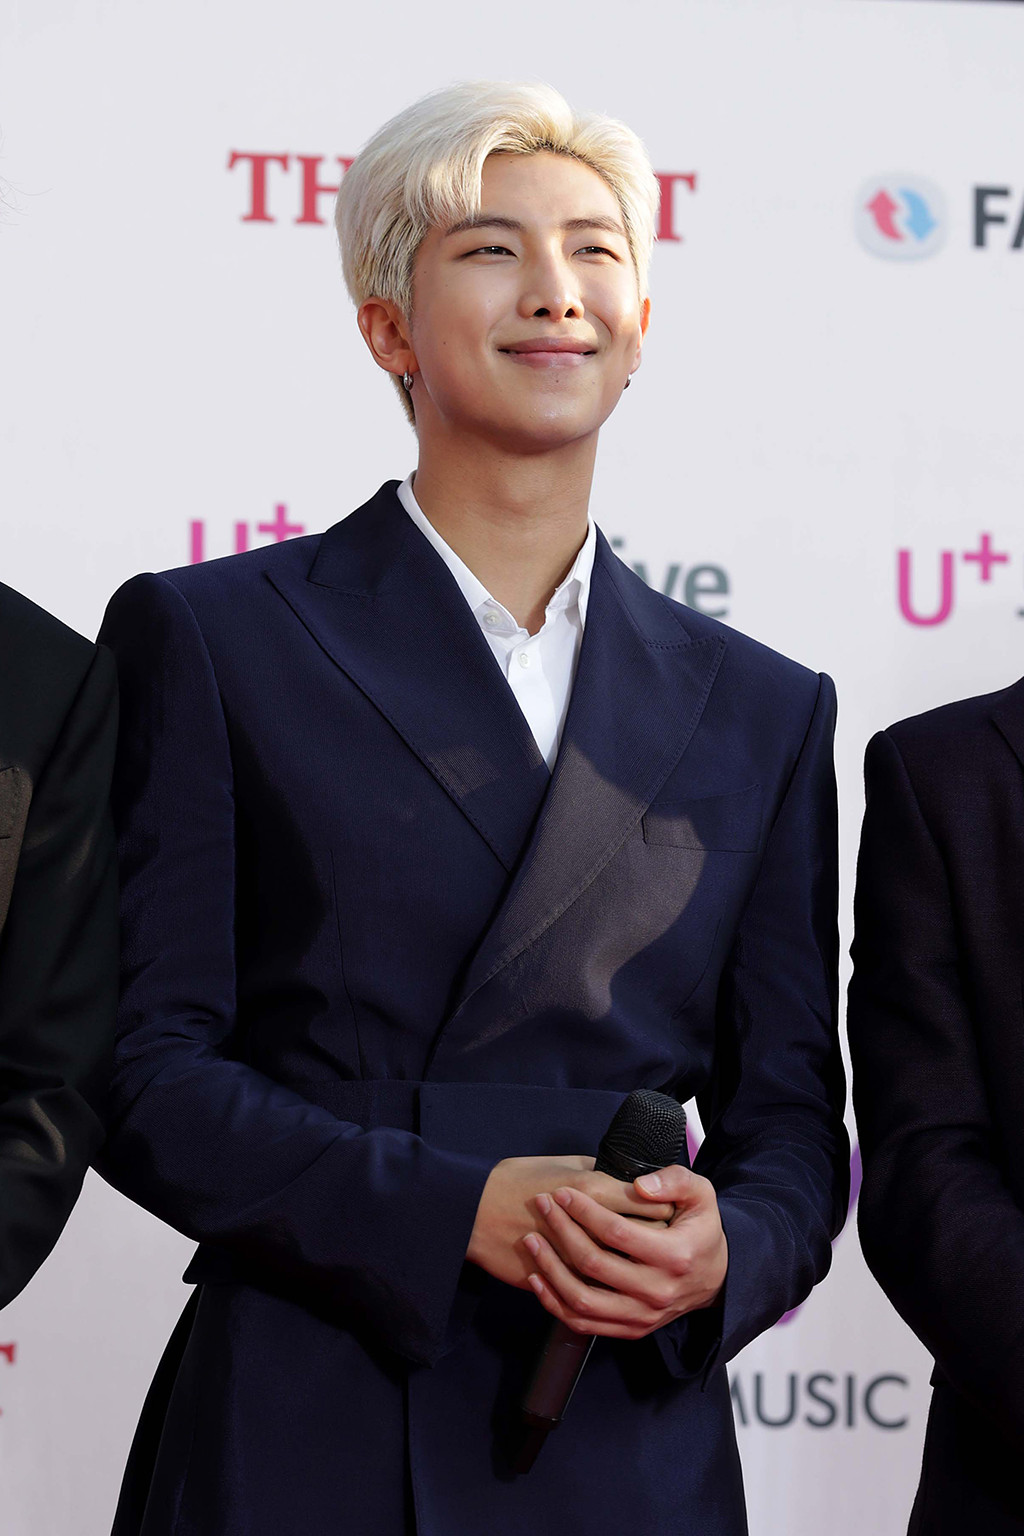 RM, BTS, The Fact Music Awards 2019